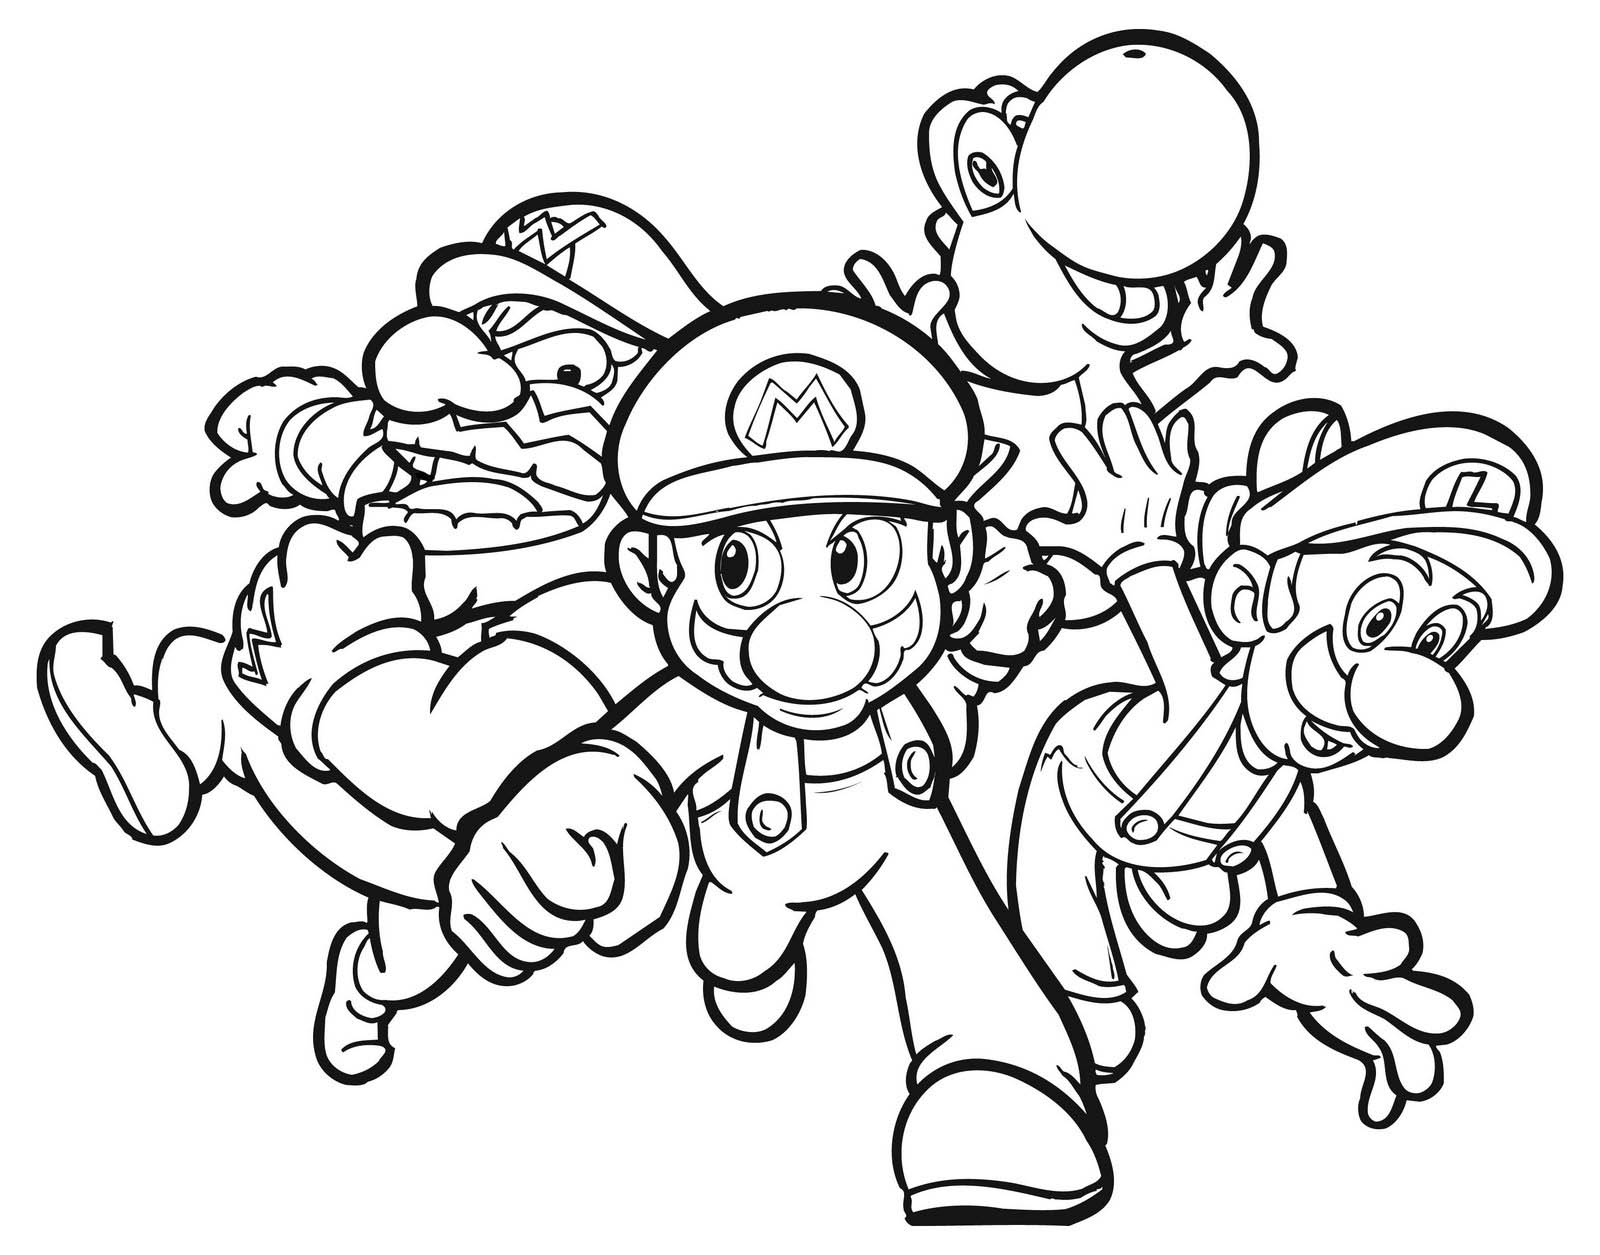 coloring book mario mario coloring pages to print minister coloring coloring mario book